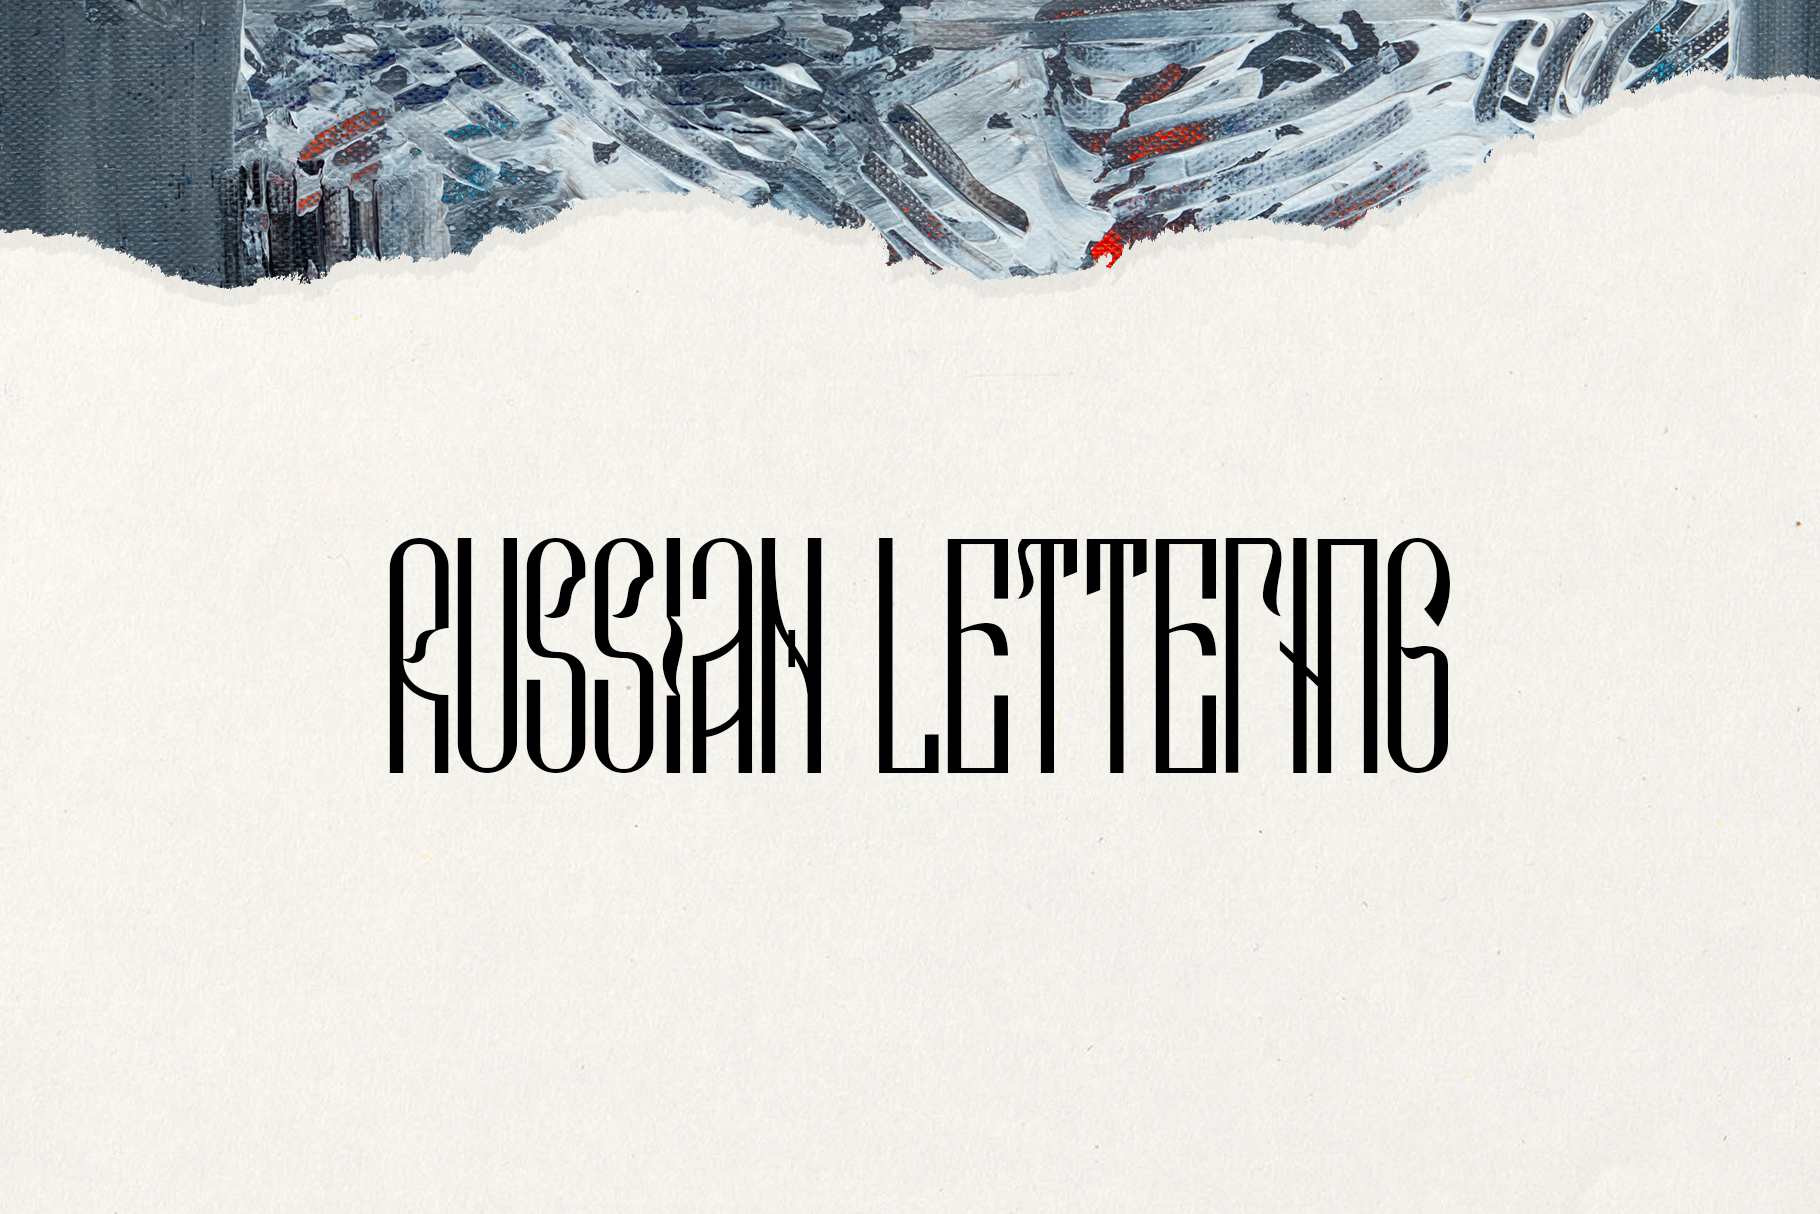 Novodevichi - russian letter font example image 2